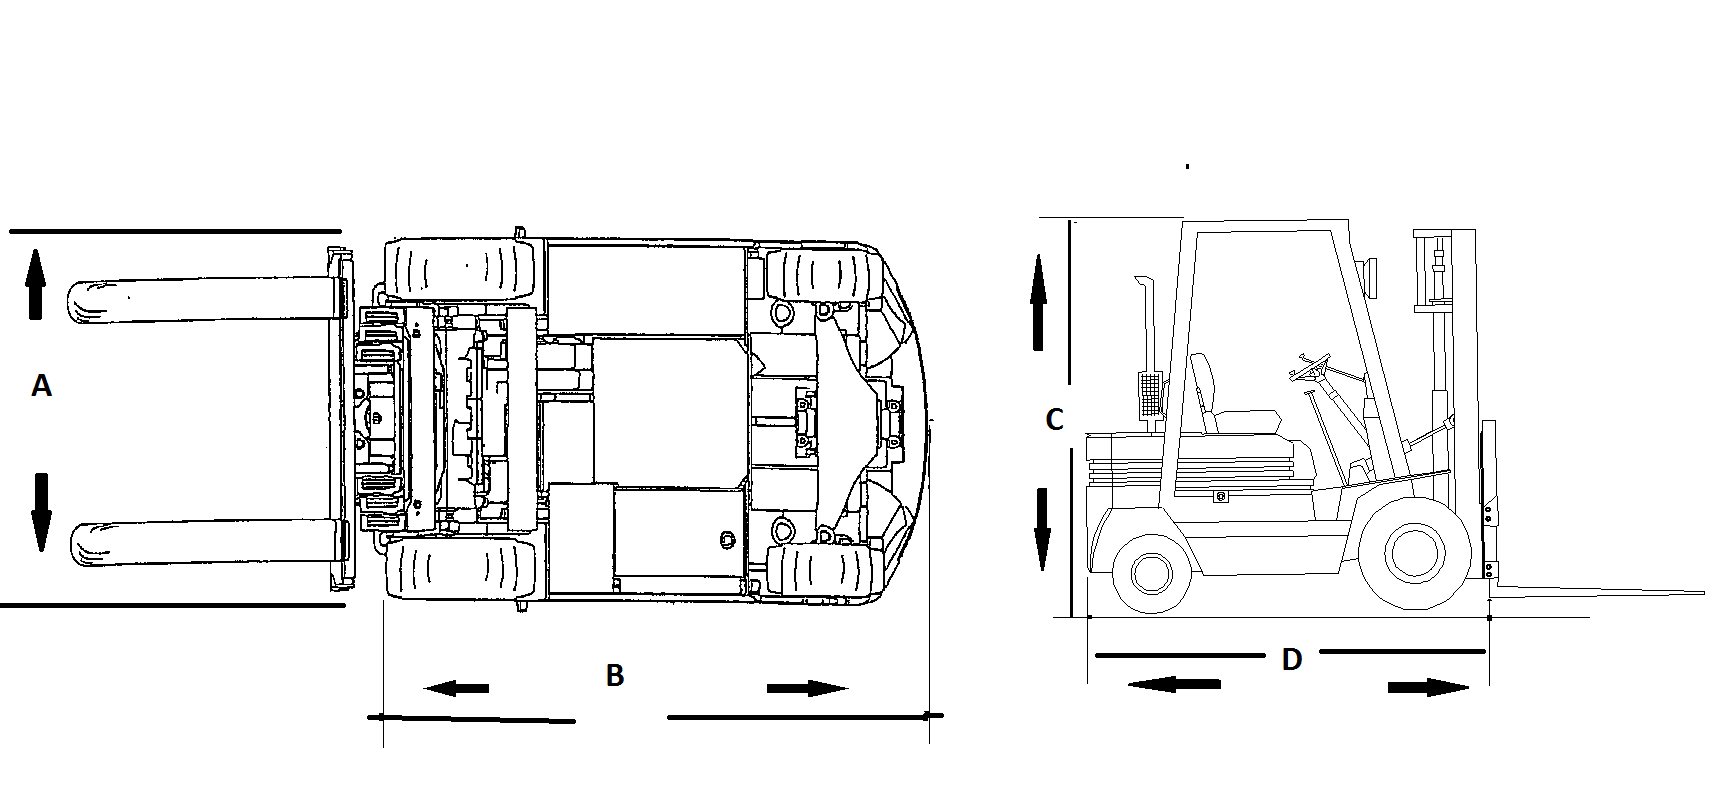 Toyota Forklift Axle Diagram on chrysler town and country manual